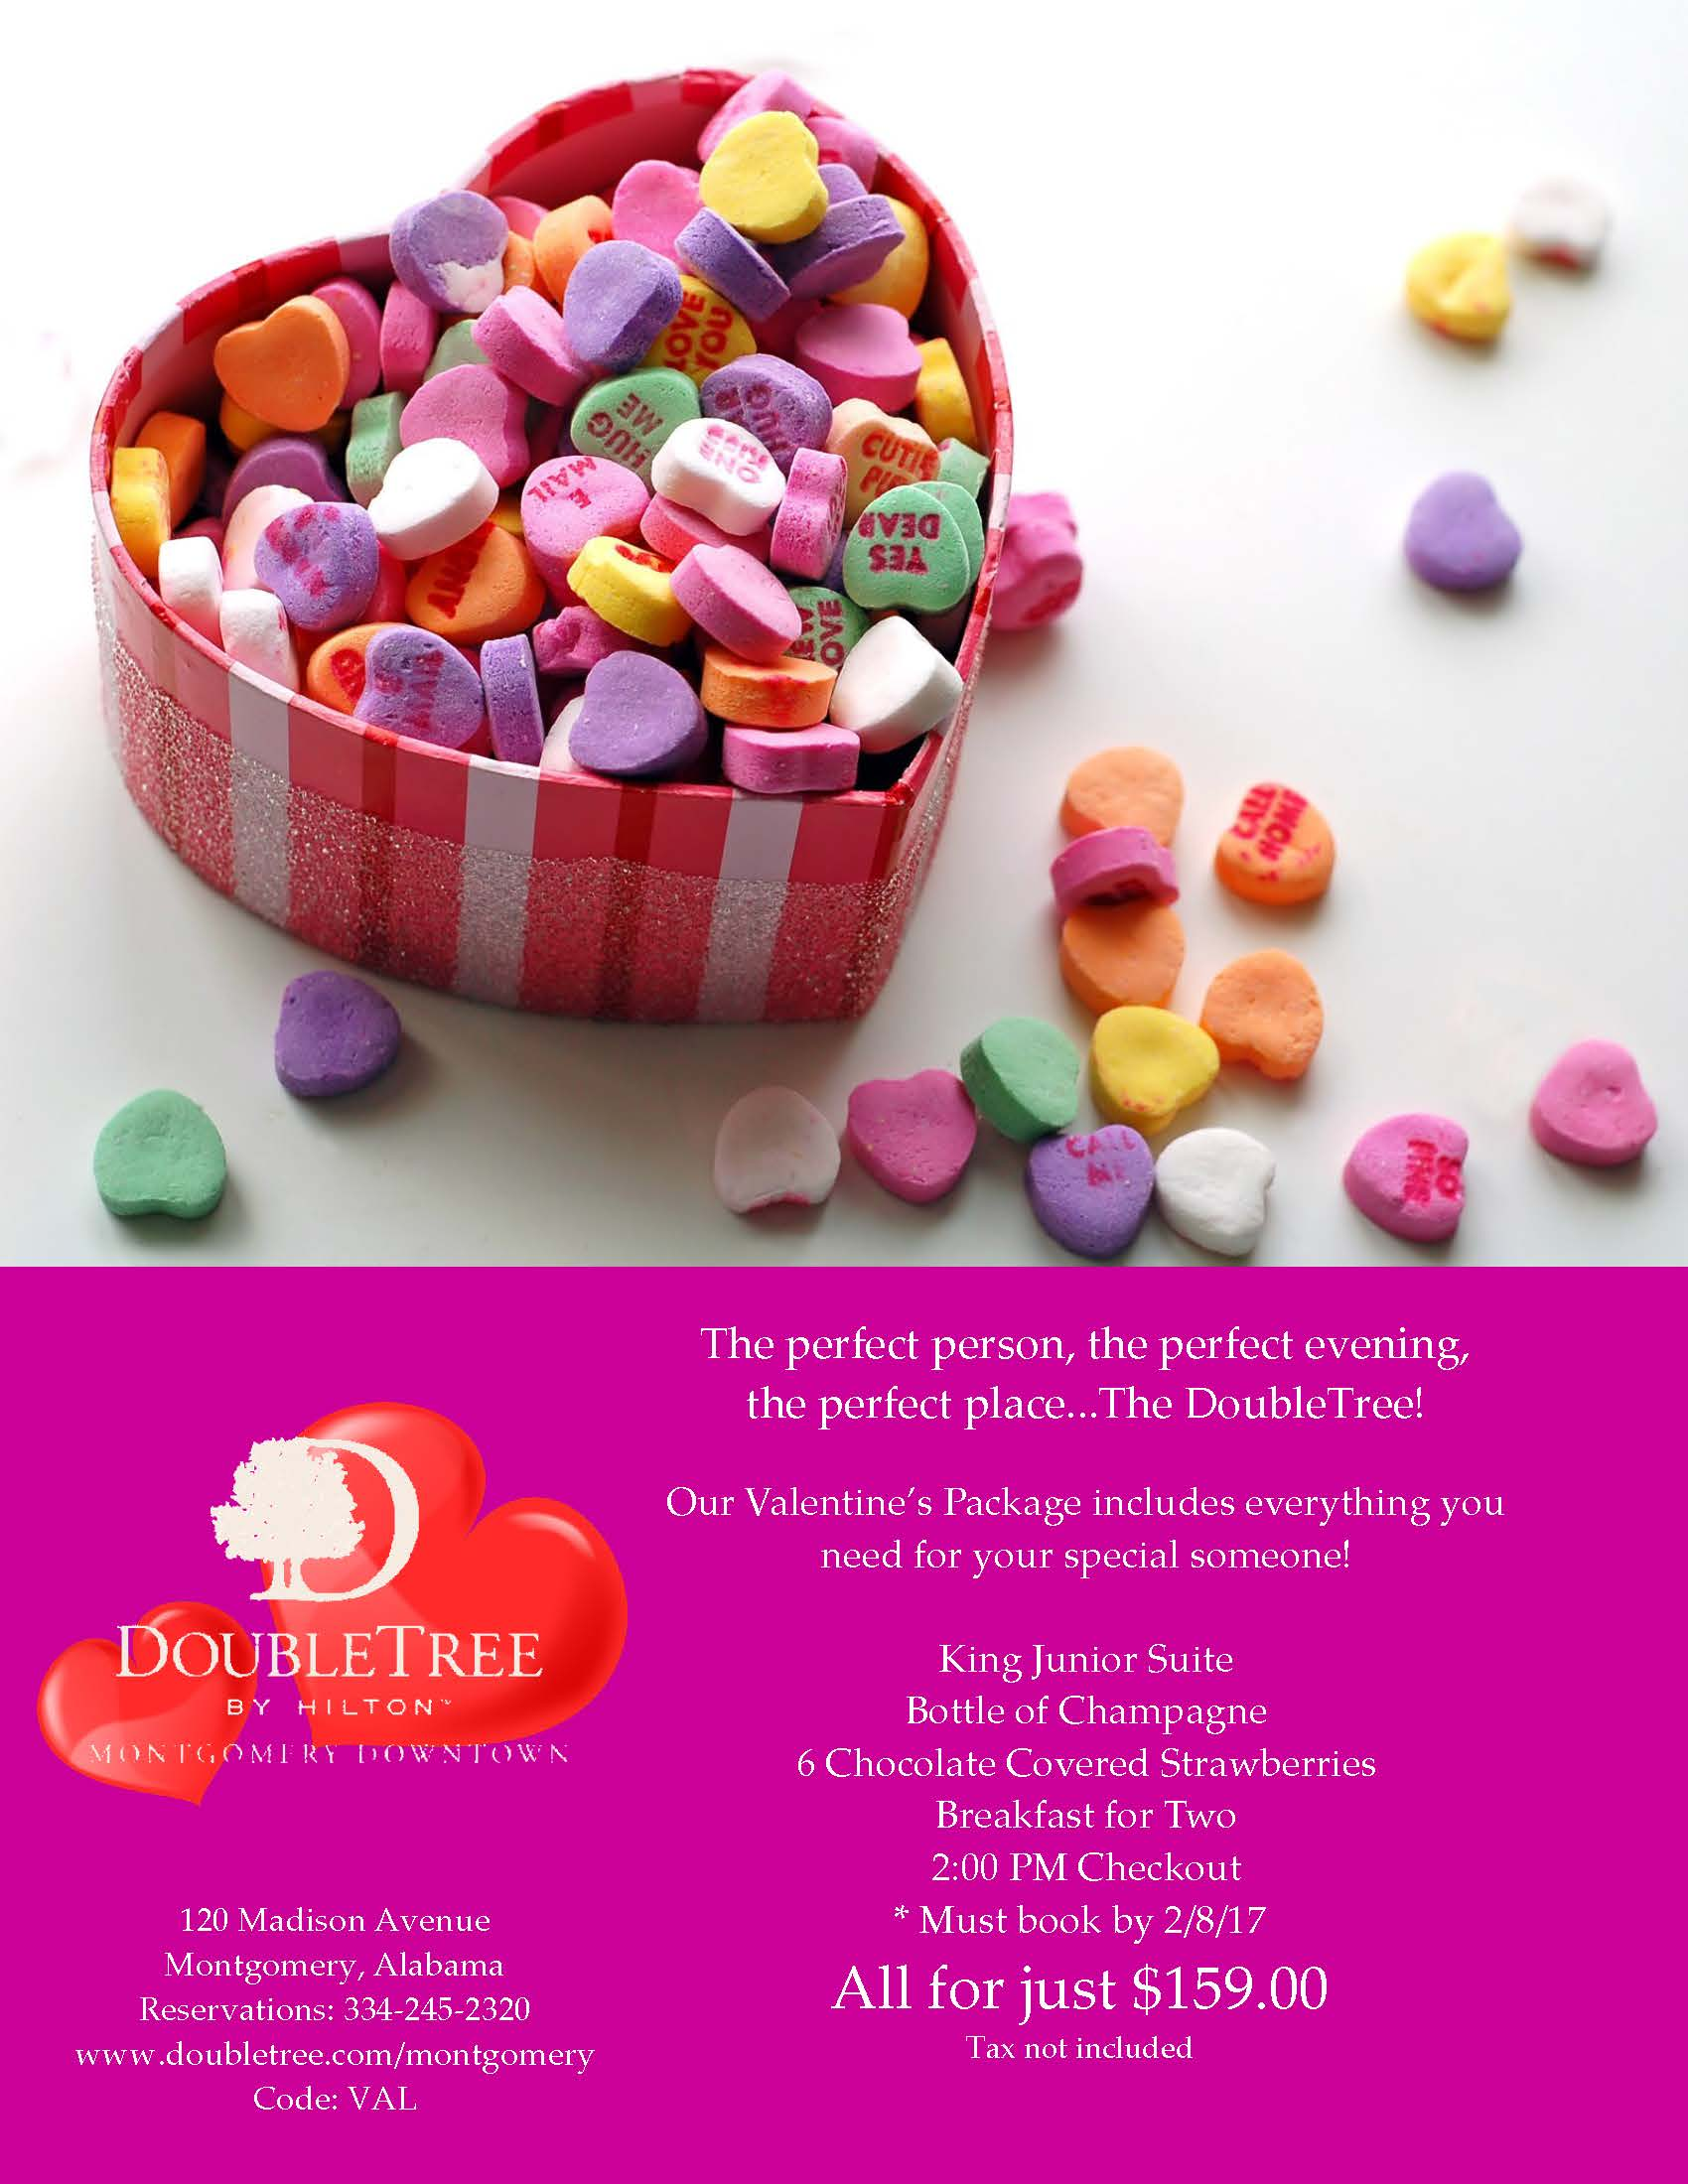 2017 Valentines Day At The DoubleTree By Hilton